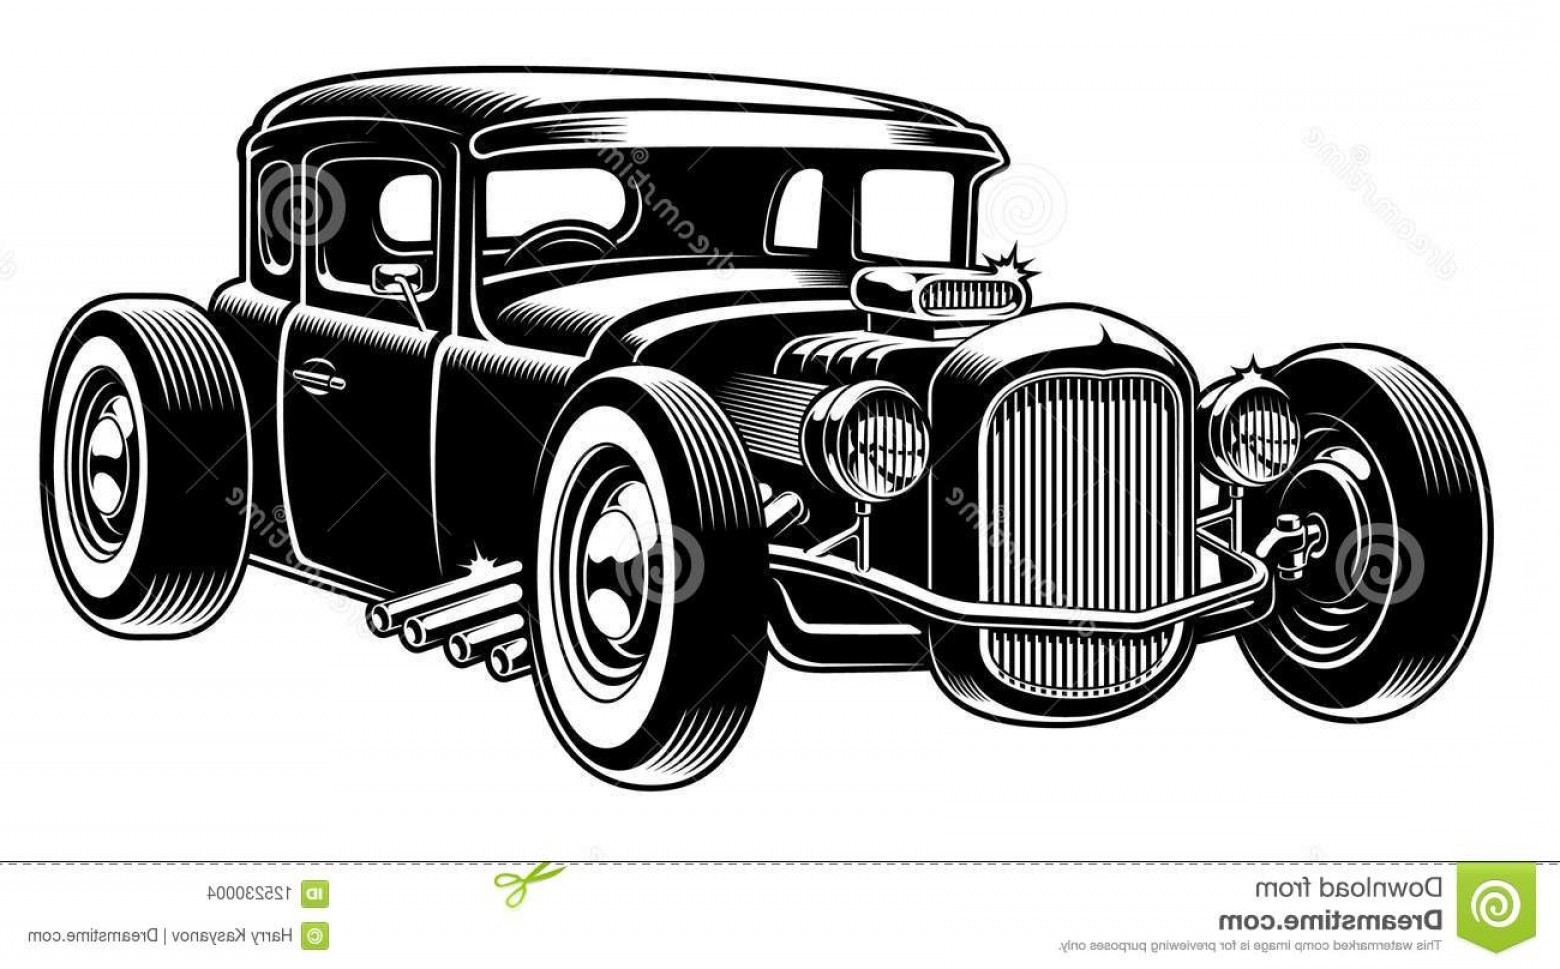 Classic Street Rod Vector Art: Vector Black White Illustration Hot Rod Vector Illustration Classic Hot Rod Isolated White Background Image